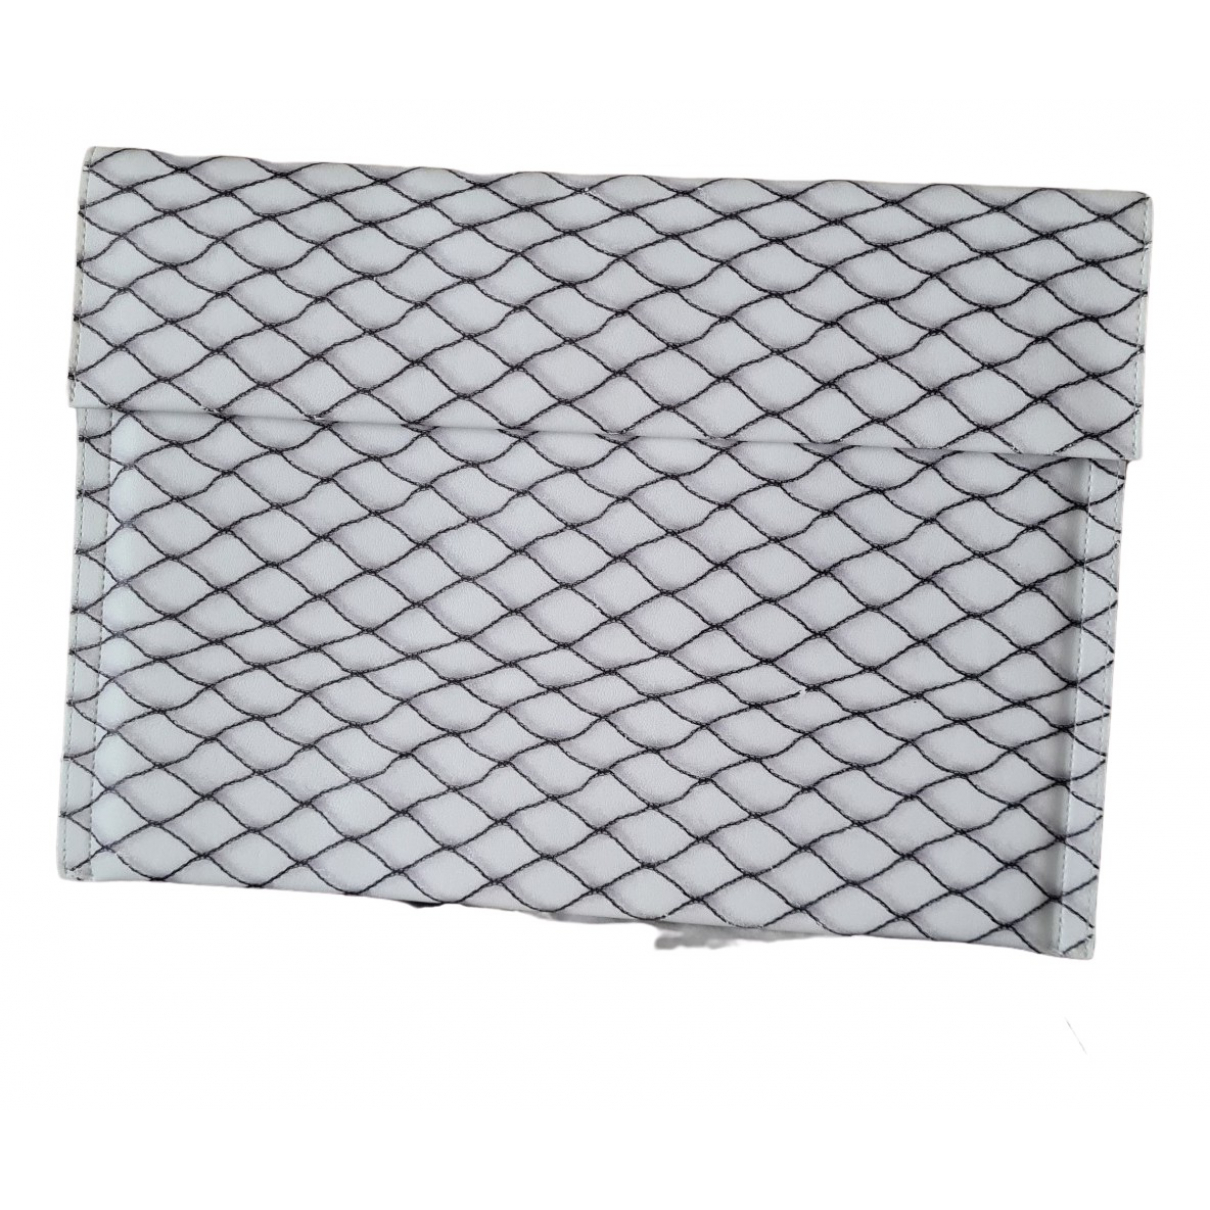 Mm6 \N Clutch in  Weiss Polyester